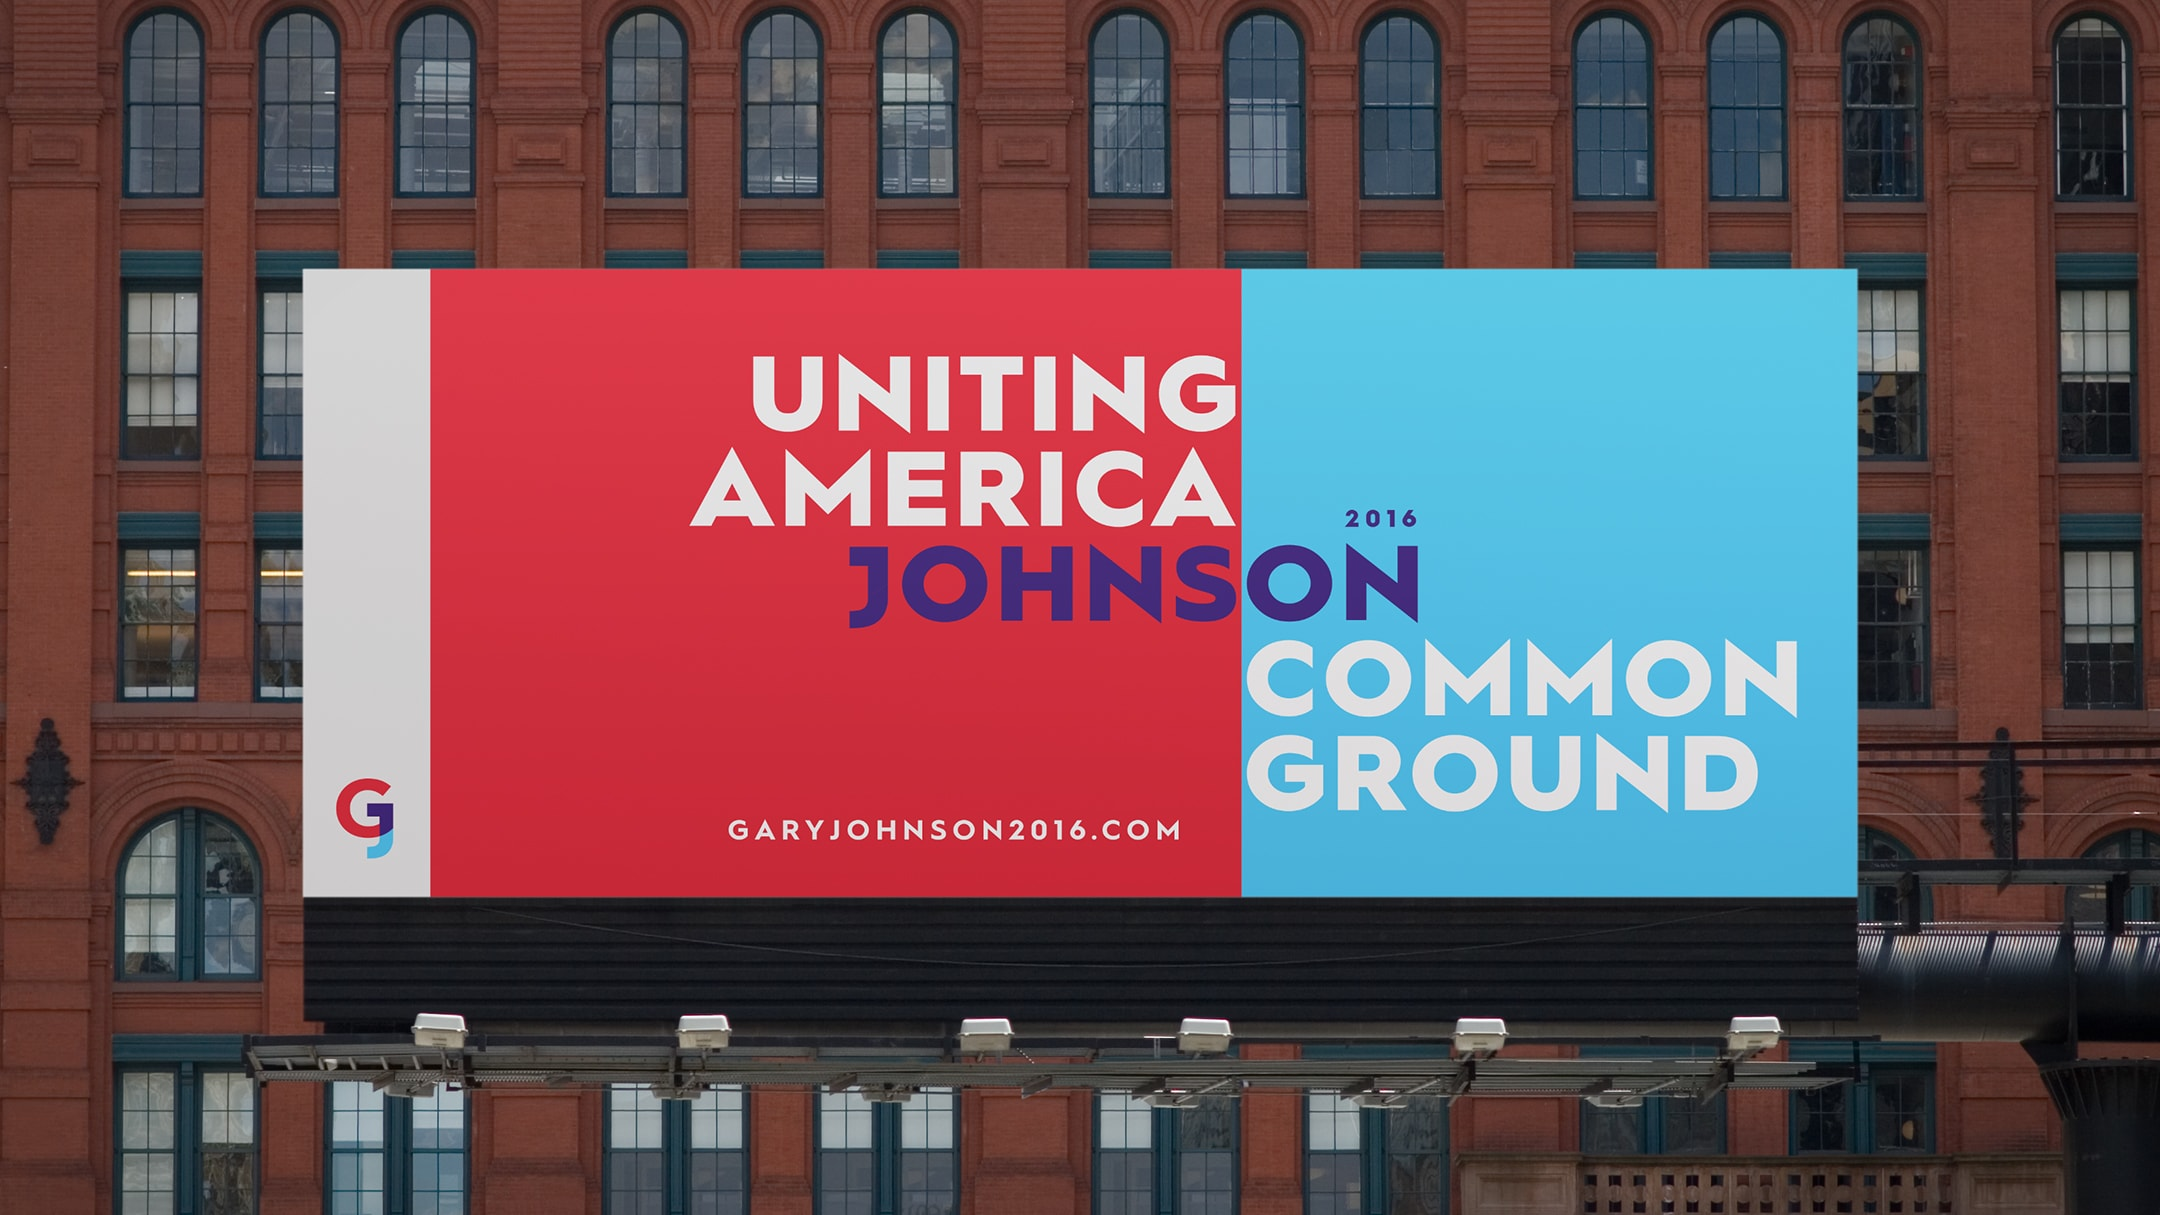 Gary Johnson spec campaign billboard in city